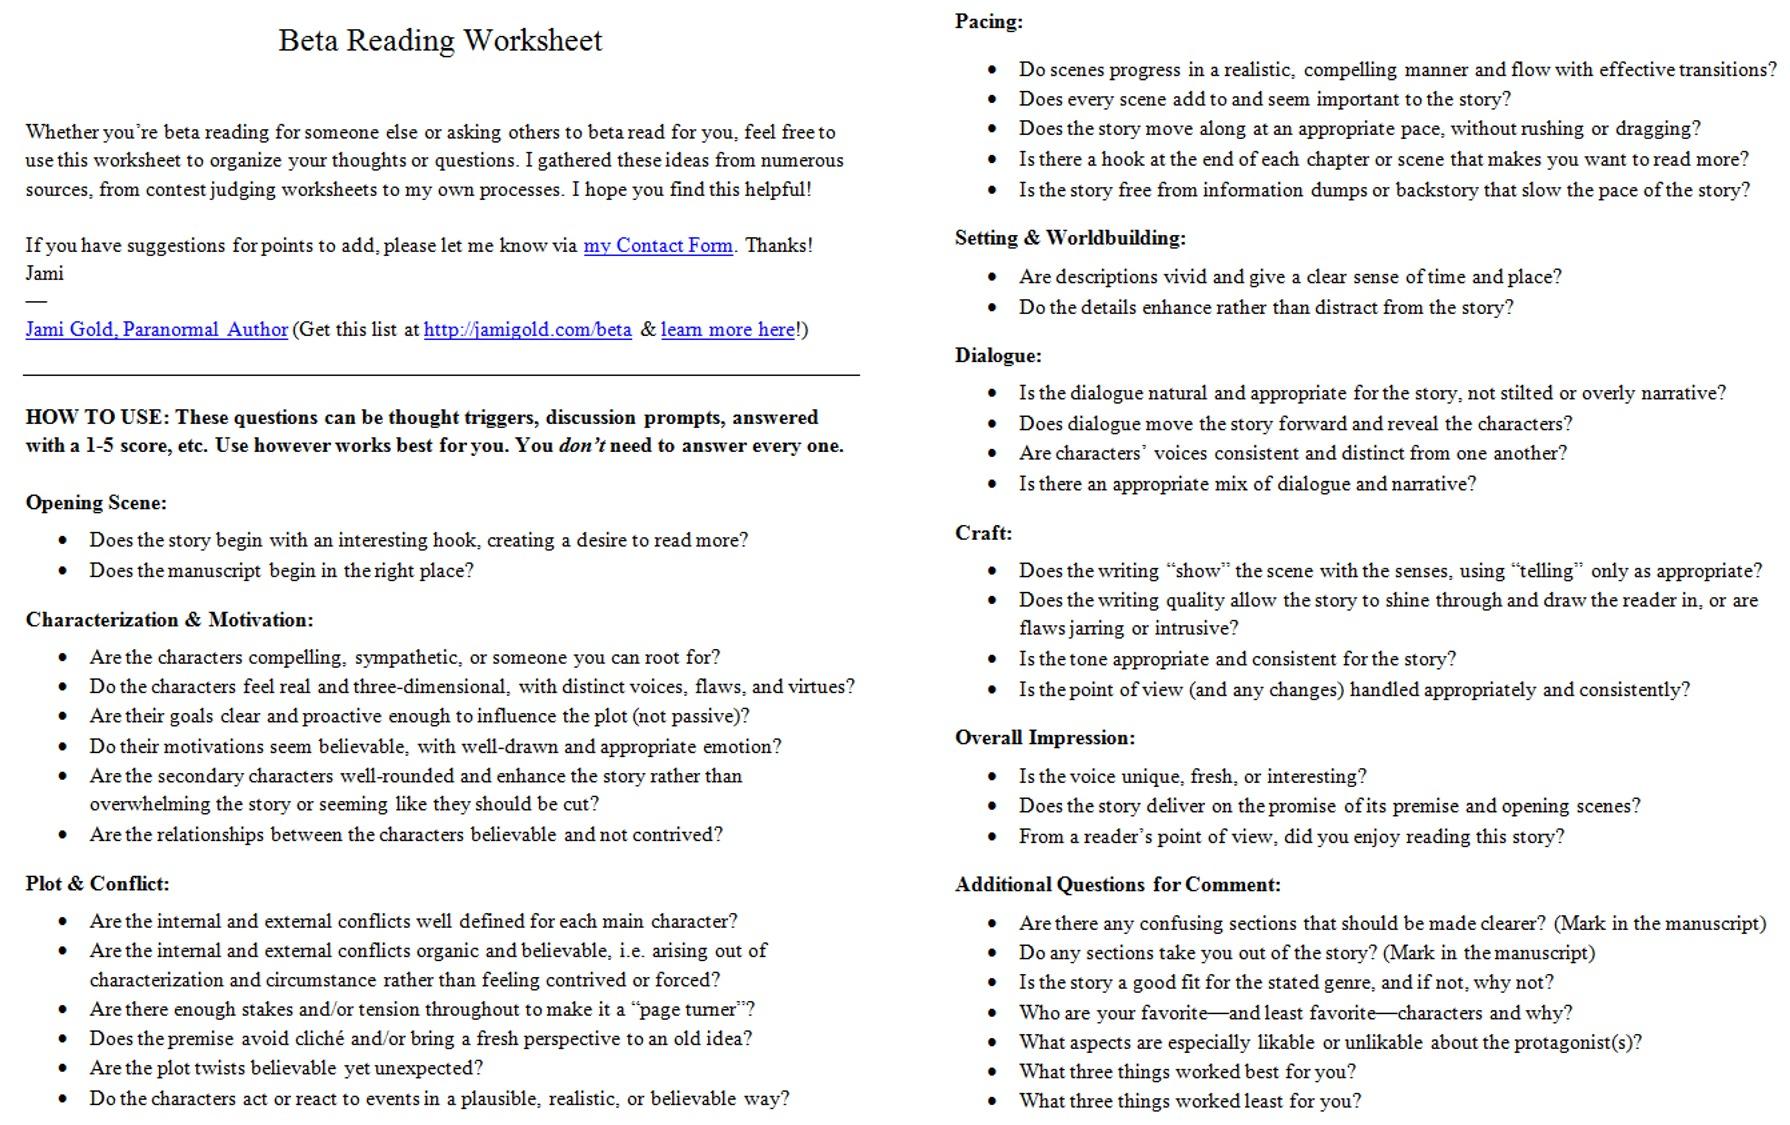 Aldiablosus  Picturesque Worksheets For Writers  Jami Gold Paranormal Author With Heavenly Screen Shot Of The Twopage Beta Reading Worksheet With Archaic Expository Essay Worksheets Also The Gift Of The Magi Worksheets In Addition Free Sight Word Worksheets For Kids And Preschooler Worksheets As Well As Synonyms Antonyms Homonyms Worksheets Additionally Rhyming Words Worksheet Year  From Jamigoldcom With Aldiablosus  Heavenly Worksheets For Writers  Jami Gold Paranormal Author With Archaic Screen Shot Of The Twopage Beta Reading Worksheet And Picturesque Expository Essay Worksheets Also The Gift Of The Magi Worksheets In Addition Free Sight Word Worksheets For Kids From Jamigoldcom